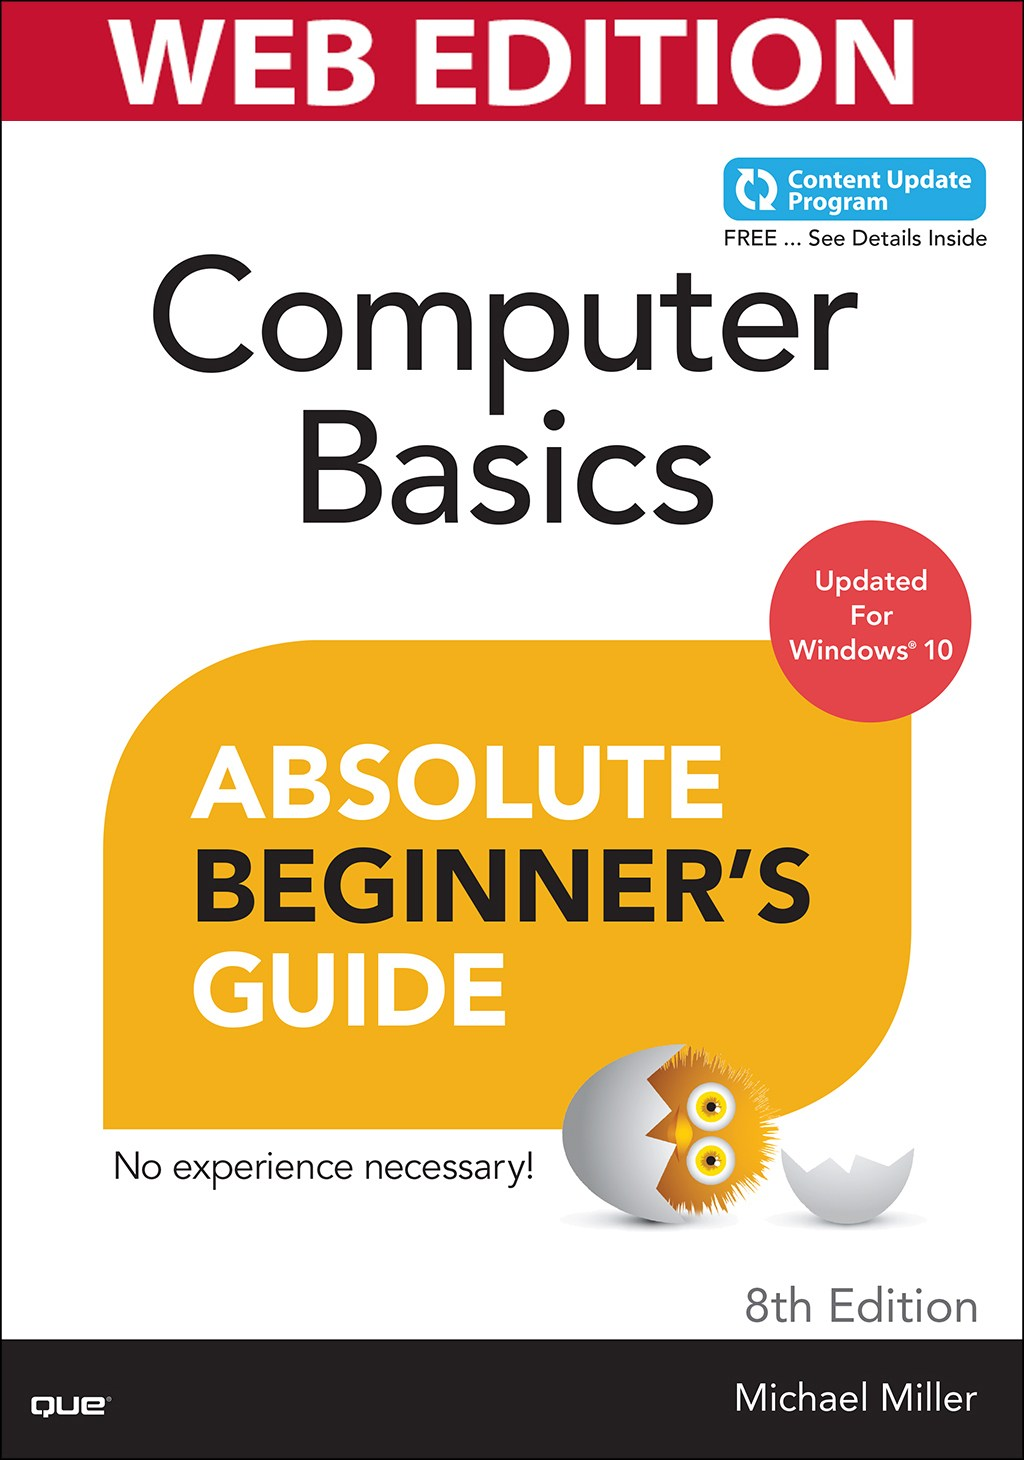 Computer Basics Absolute Beginner's Guide, Windows 10 Edition (Web Edition with Content Update Program)